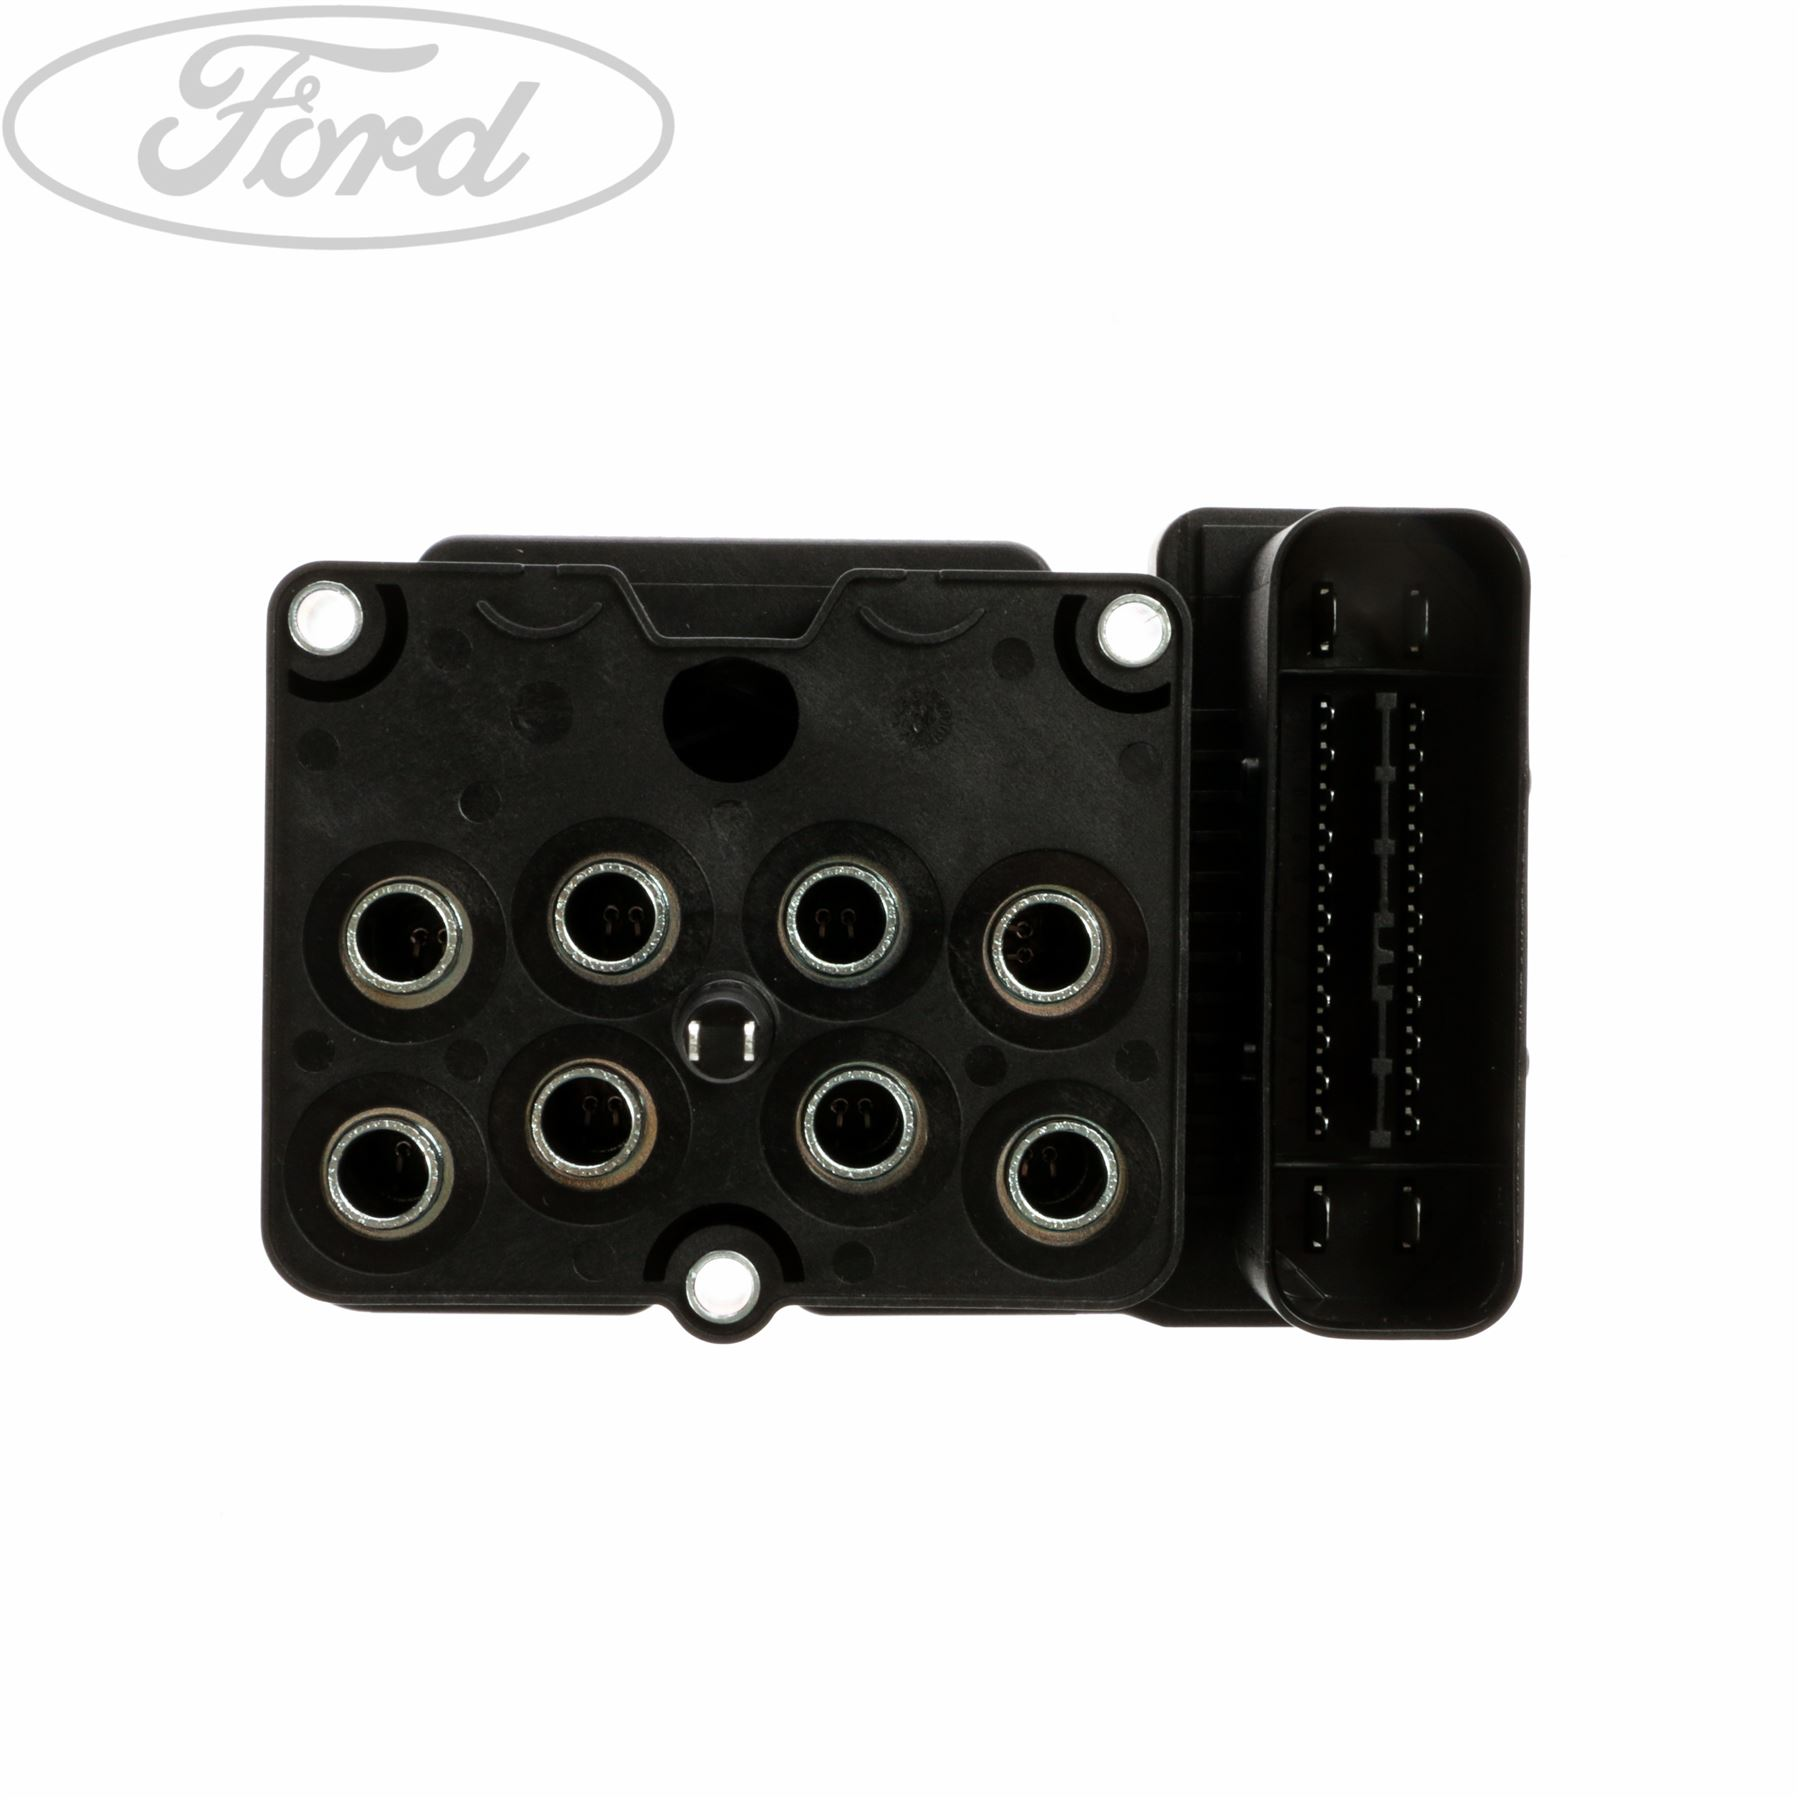 hight resolution of details about genuine ford ka mk1 fiesta mk6 abs control module relay ecu less esp 1520659